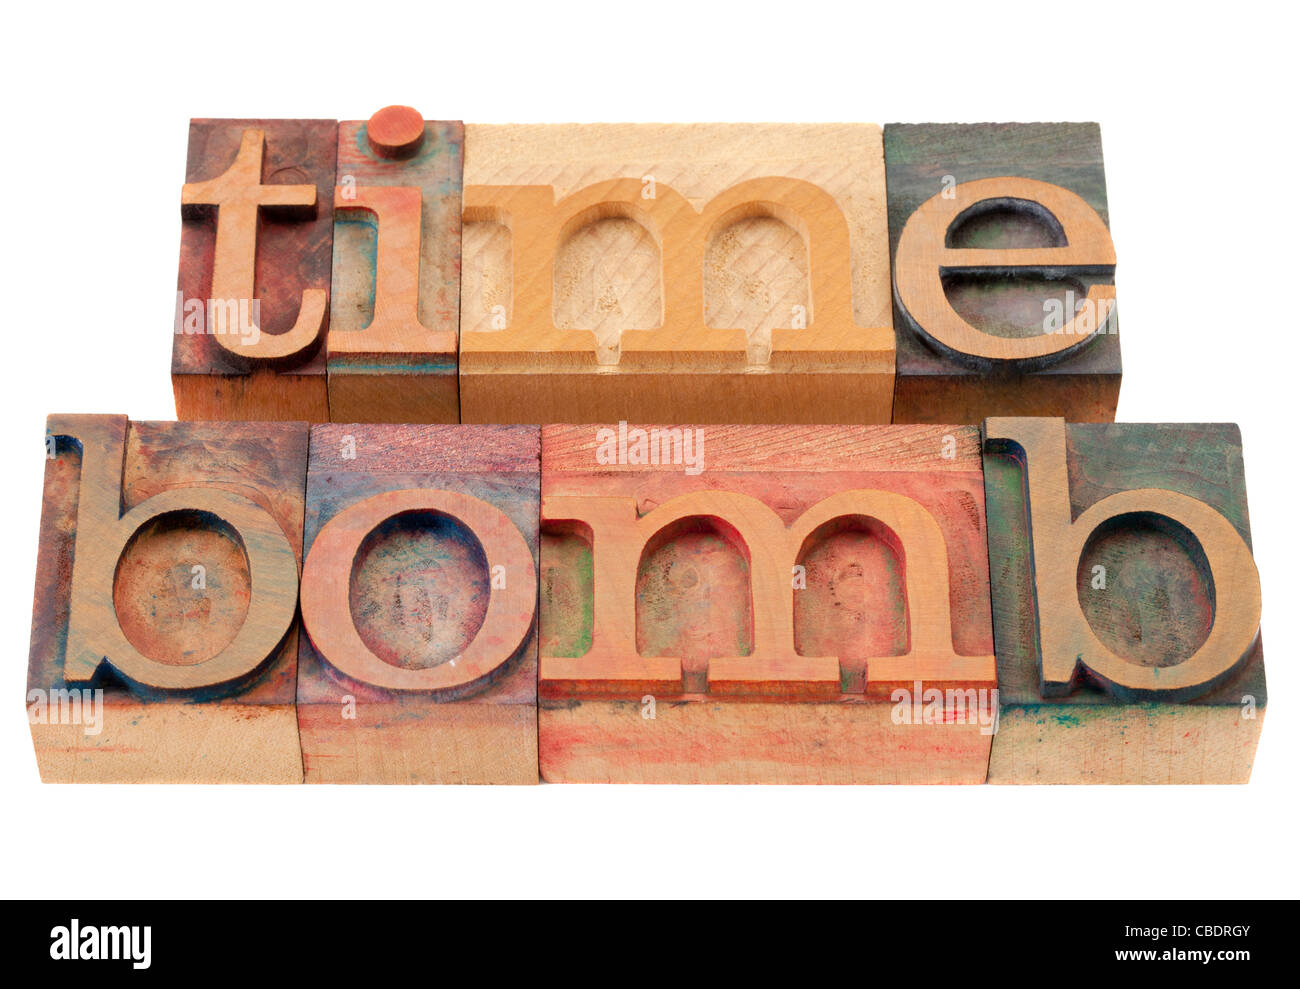 time bomb - isolated words in vintage wood letterpress printing blocks - Stock Image